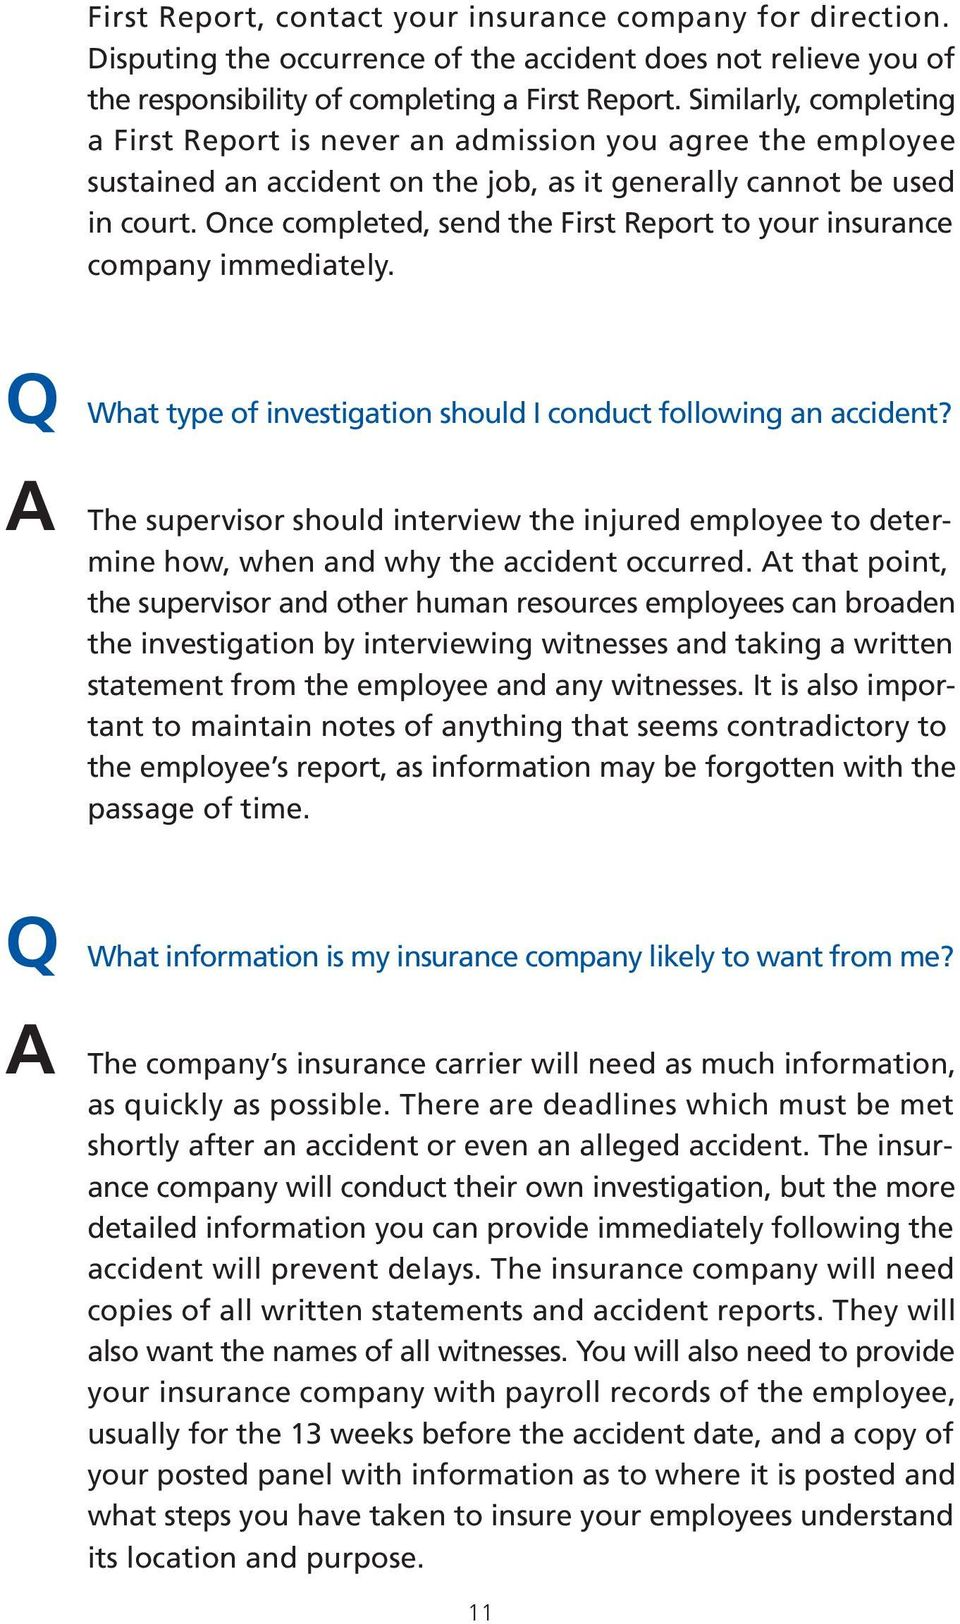 Once completed, send the First Report to your insurance company immediately. Q What type of investigation should I conduct following an accident?